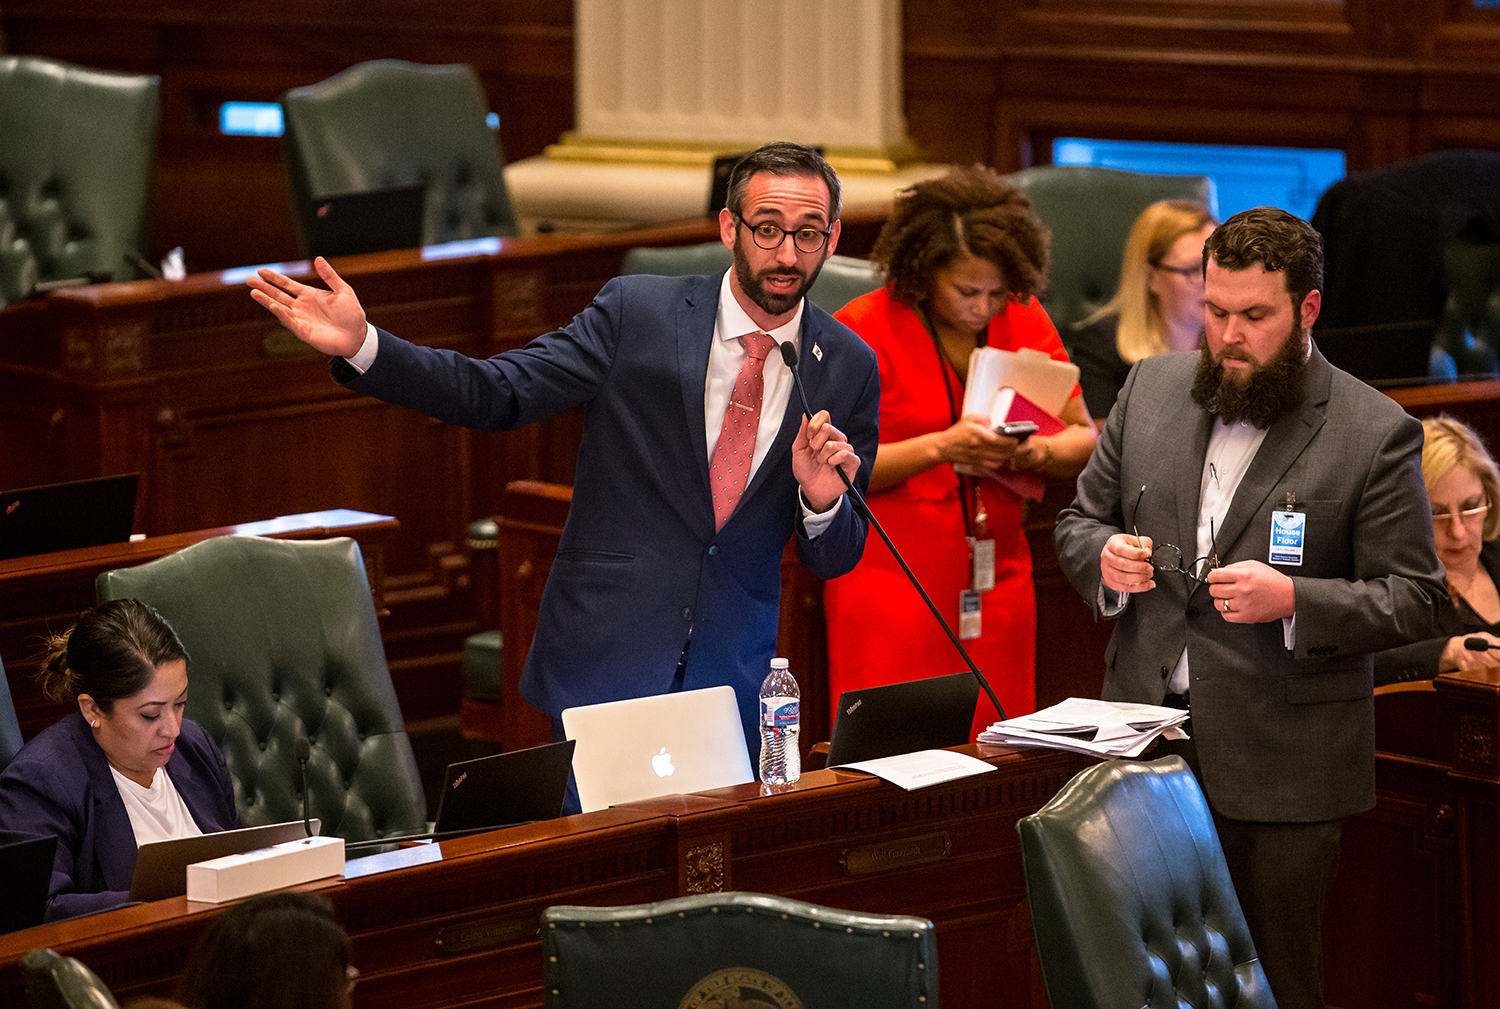 Illinois State Rep. Will Guzzardi, D-Chicago, answers questions from the Republican side of the aisle during debate on the House floor for Senate Bill 1, the bill to raise the minimum wage to $15 by 2025, at the Illinois State Capitol, Thursday, Feb. 14, 2019, in Springfield, Ill. [Justin L. Fowler/The State Journal-Register]